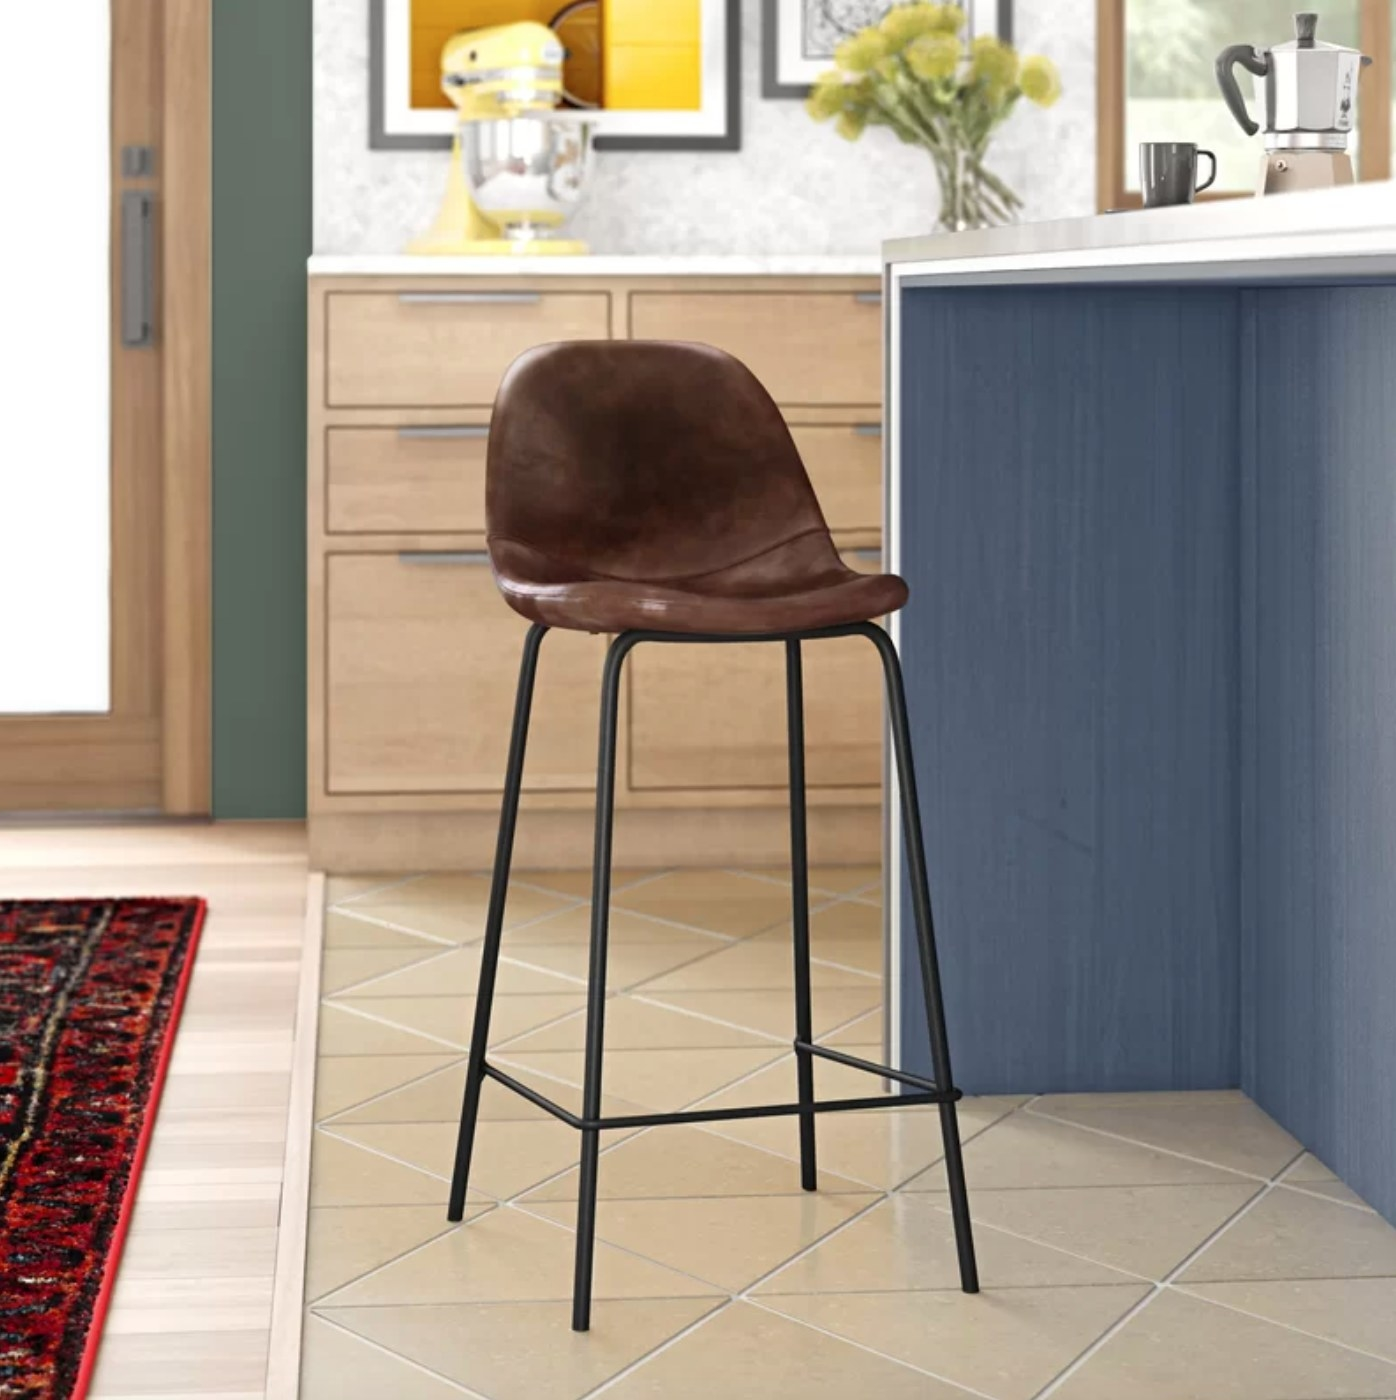 One of the kitchen stools with black legs and a brown leather seat